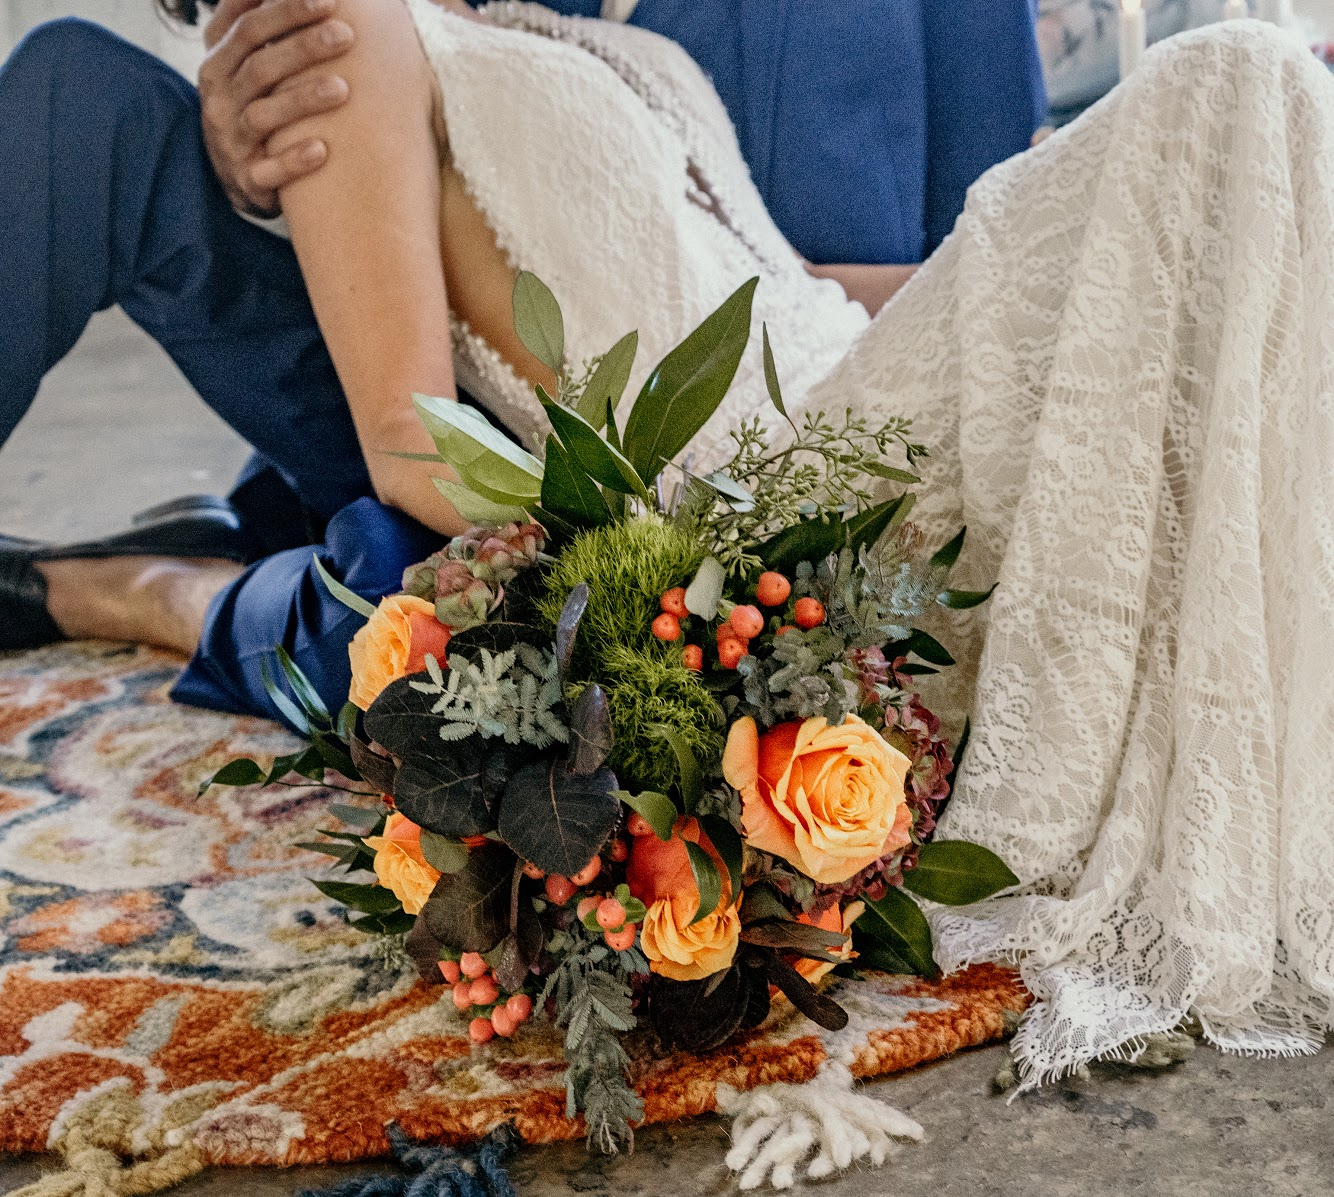 Boho_weddings_iowa_bohemian_weddings_desmoines_wedding_florist